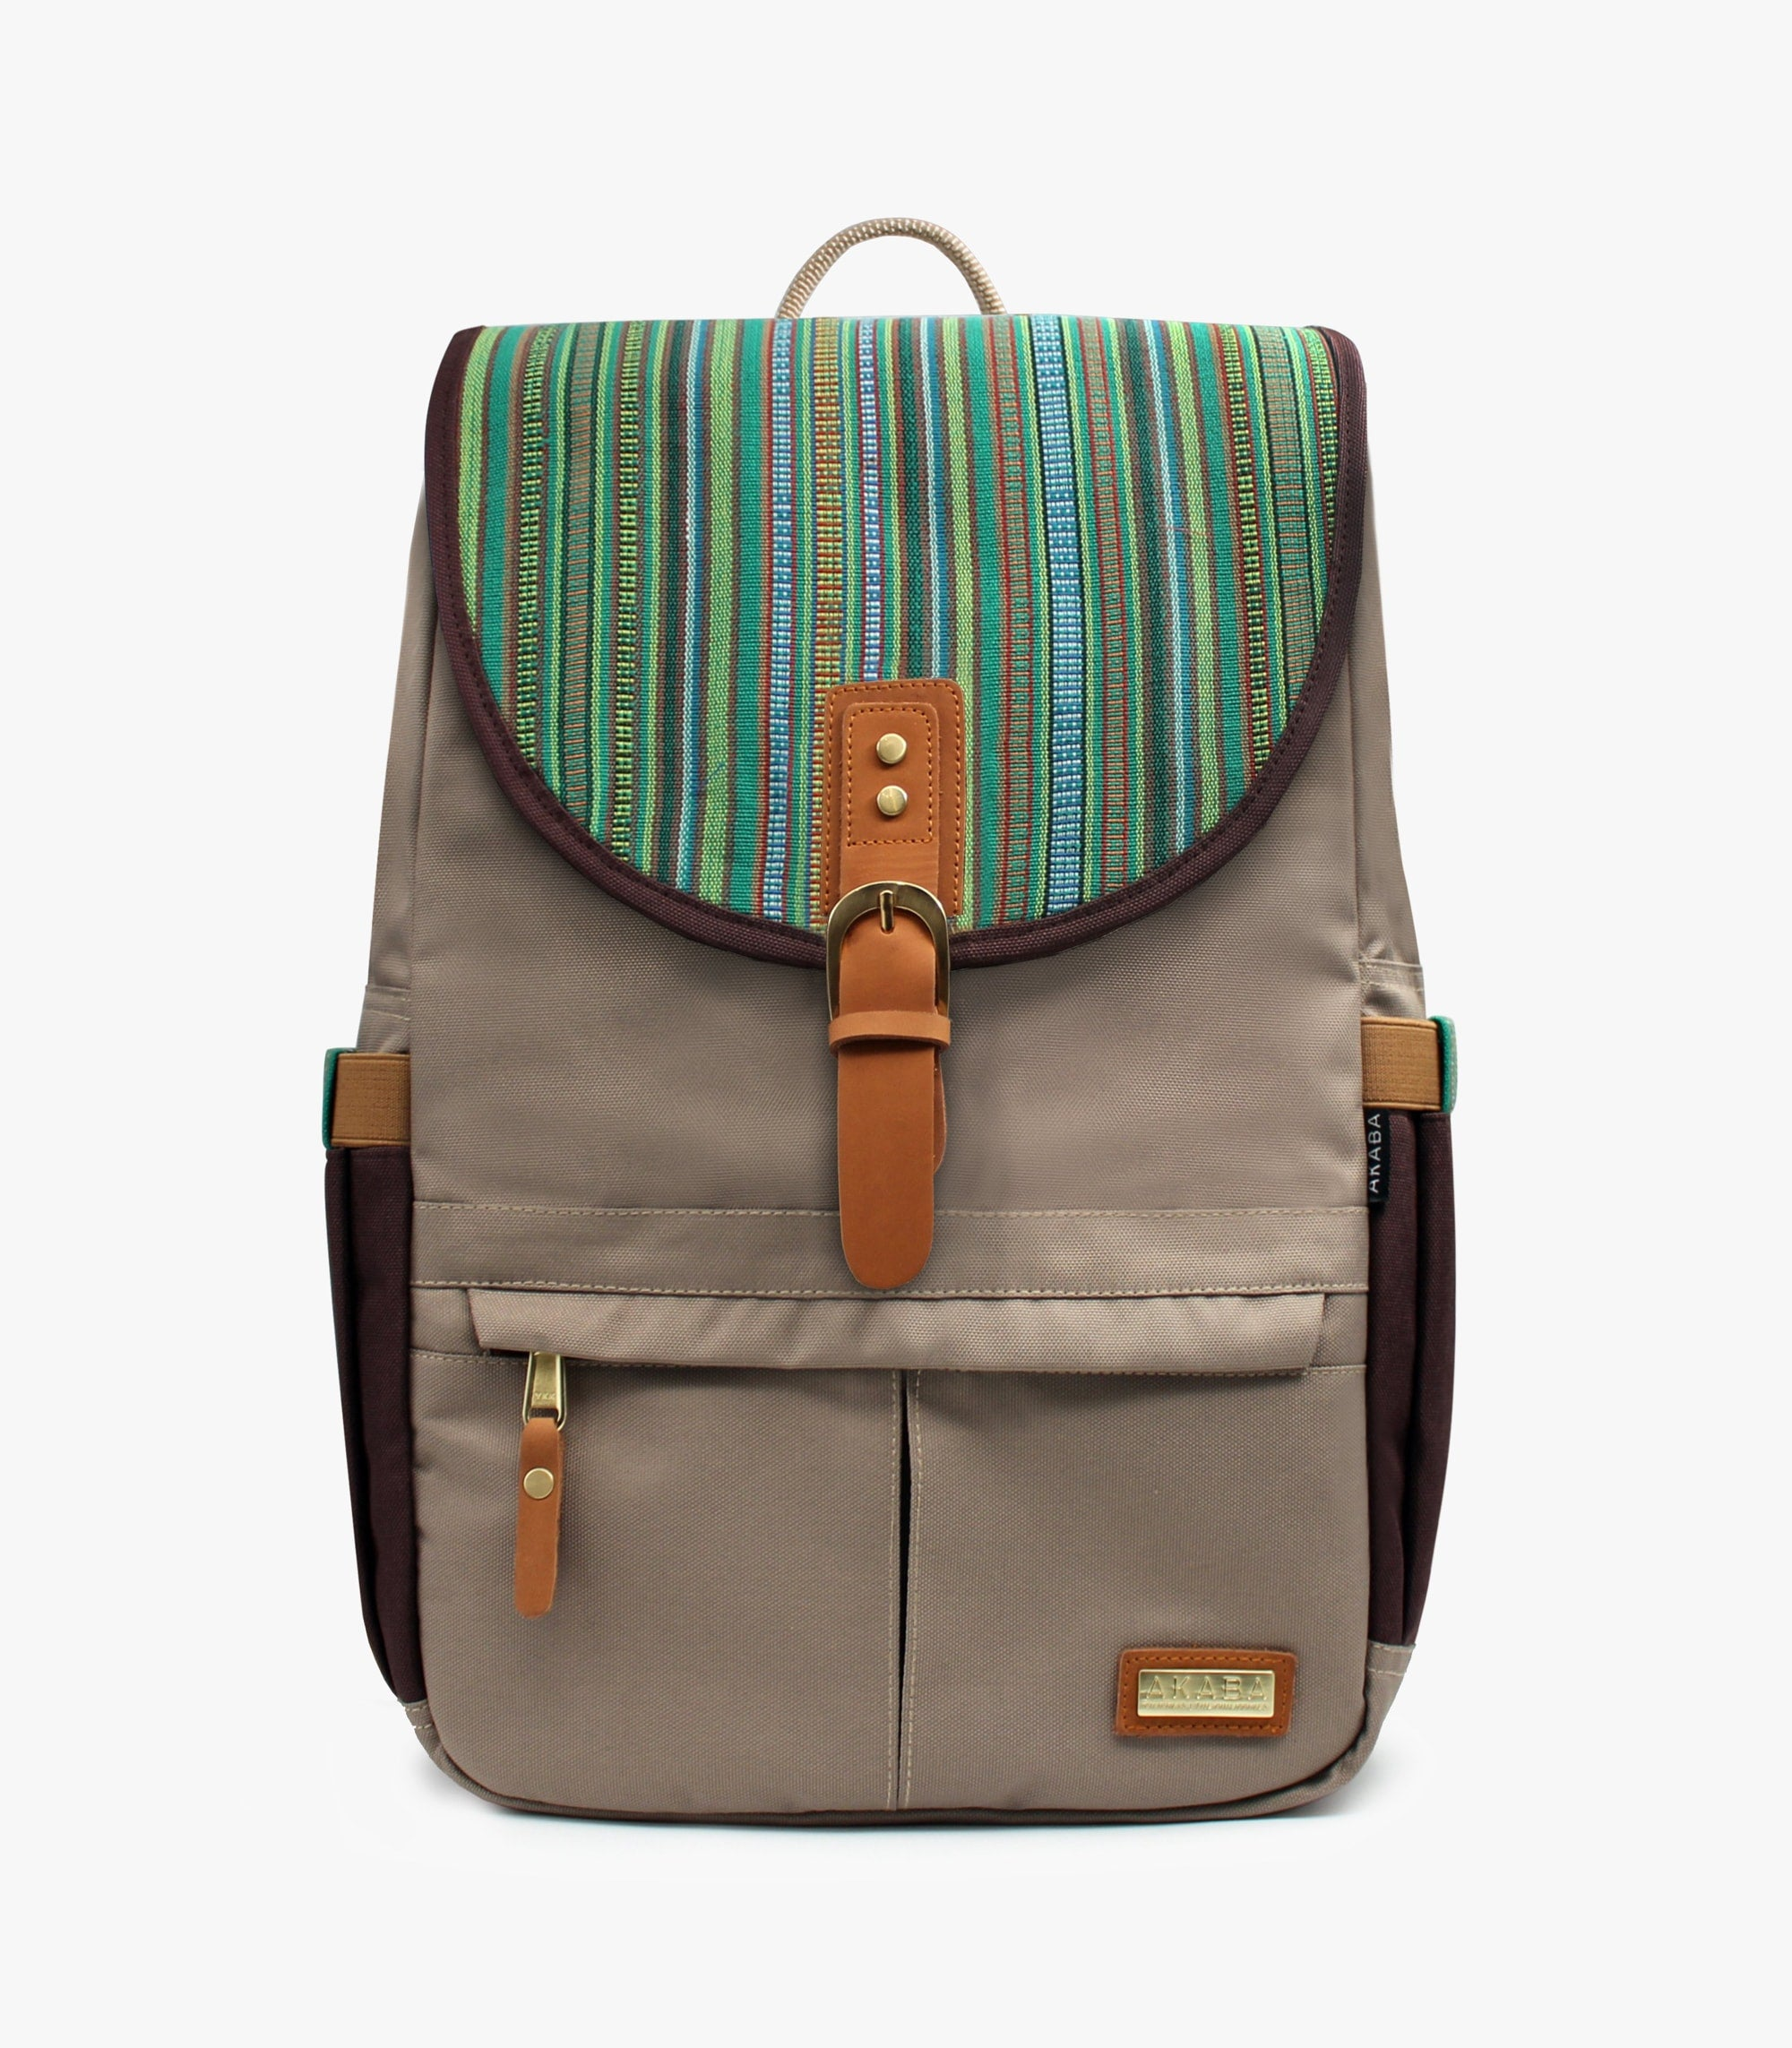 Camino Dos Backpack - AKABA - Green